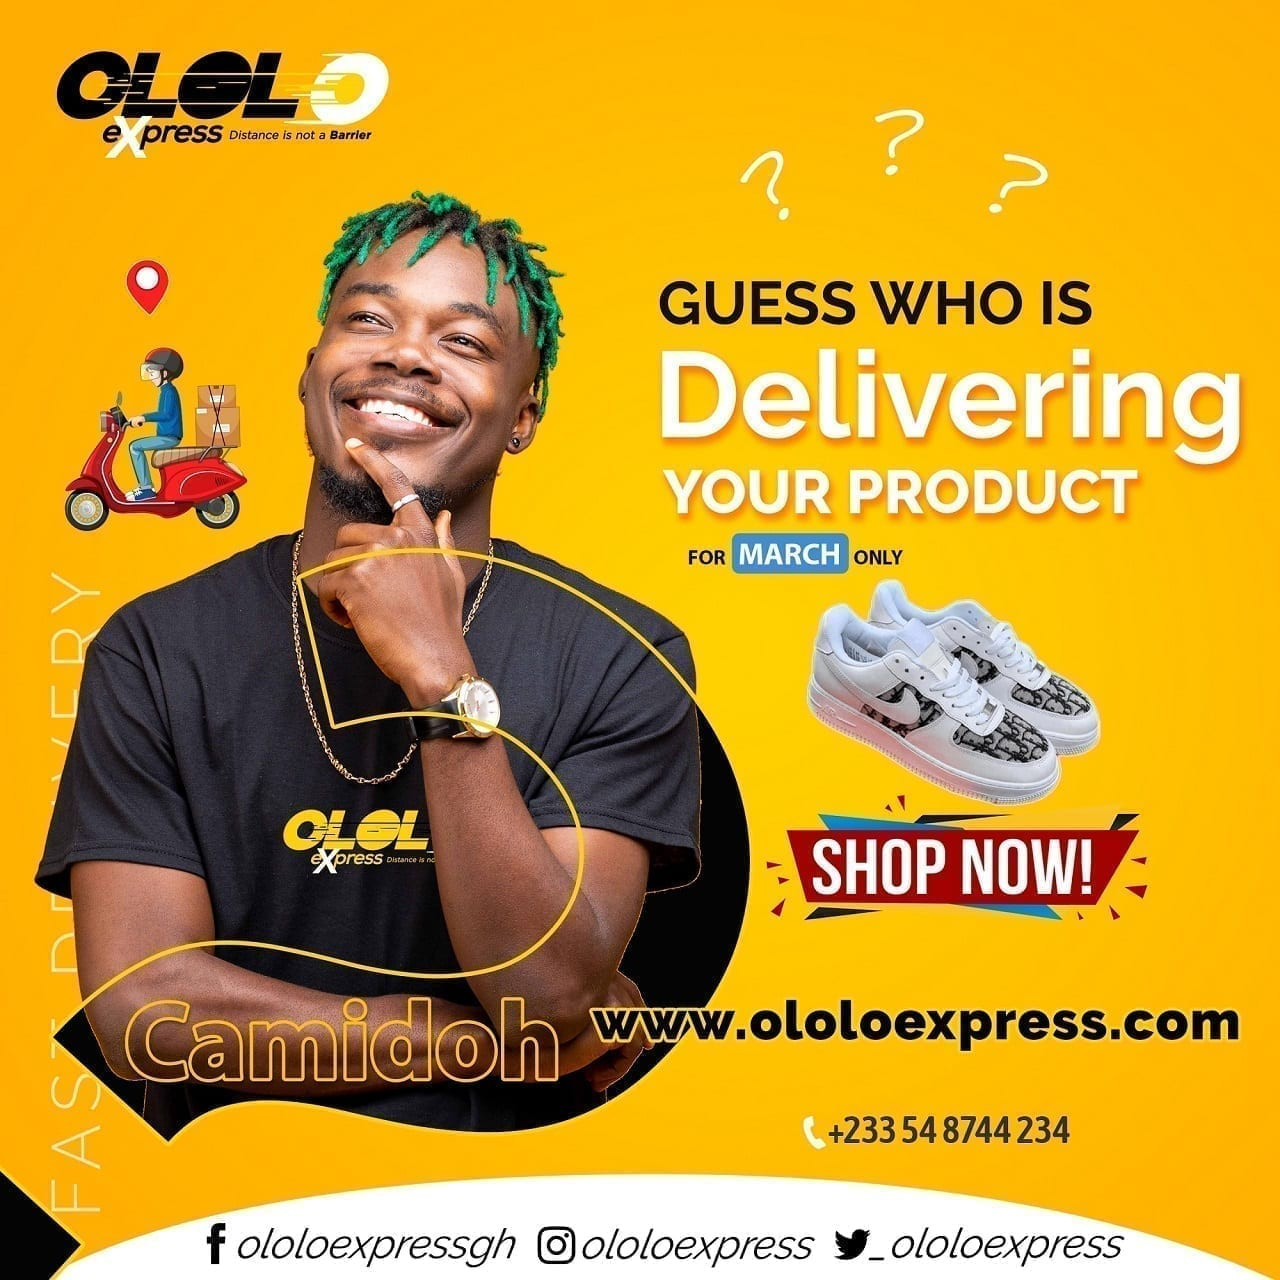 Camidoh will be delivering orders from ololoexpress